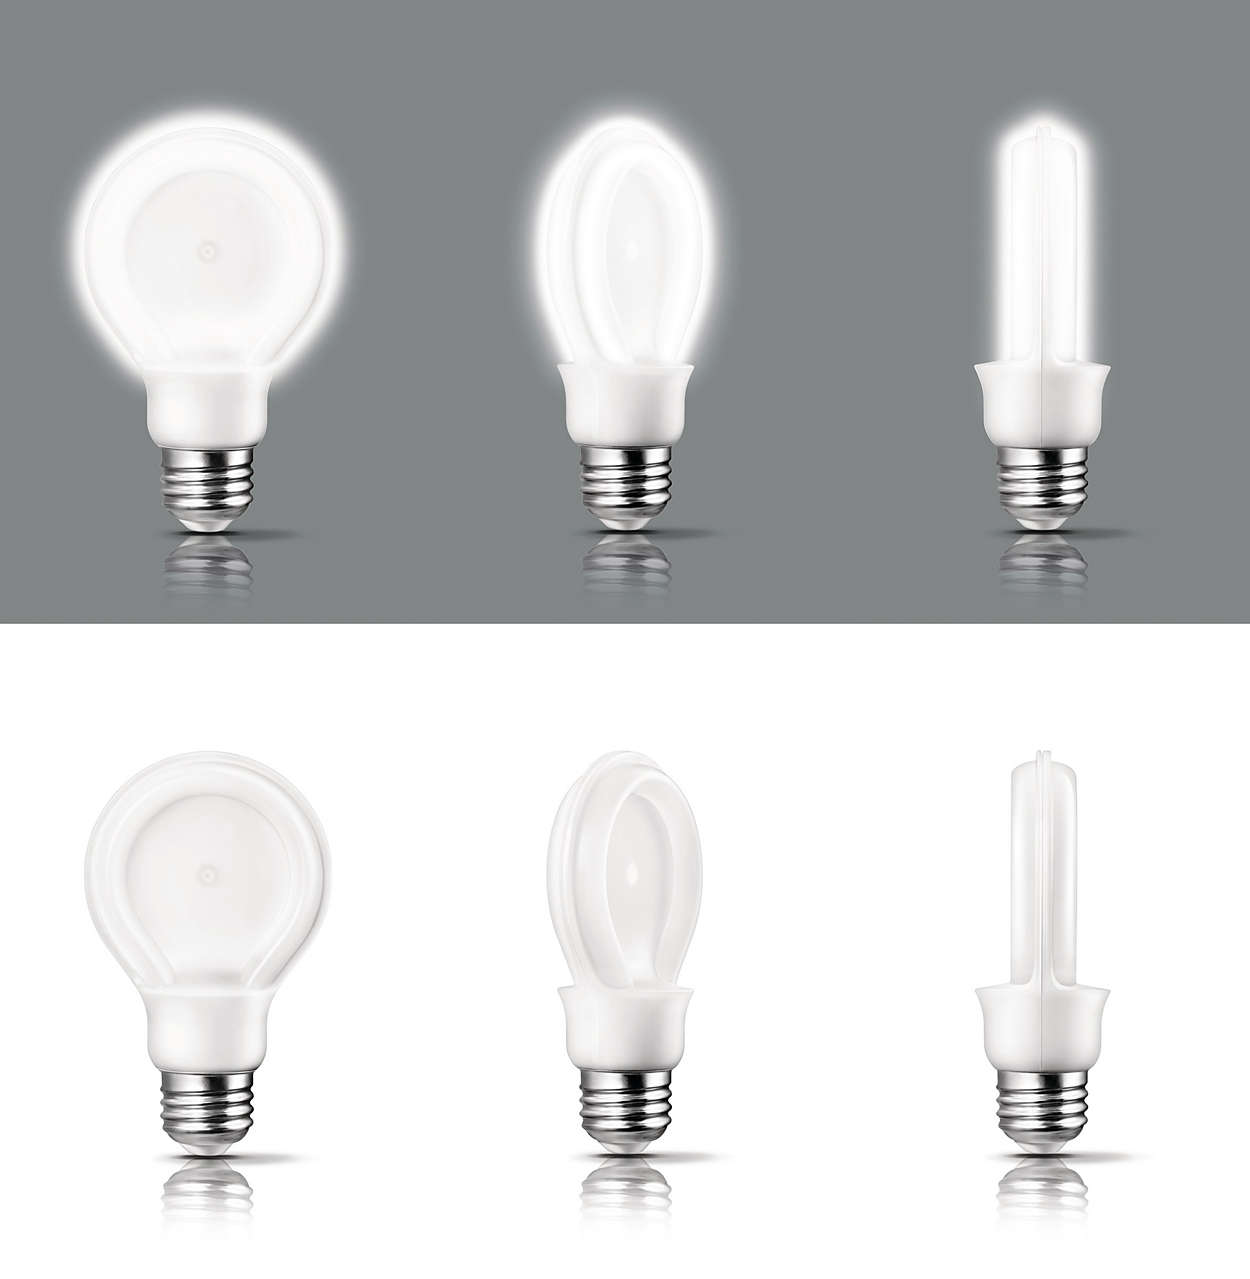 Buy SlimStyle A19 10.5w Soft White LED Bulb   Philips Lighting:An innovative design, and irresistible price,Lighting